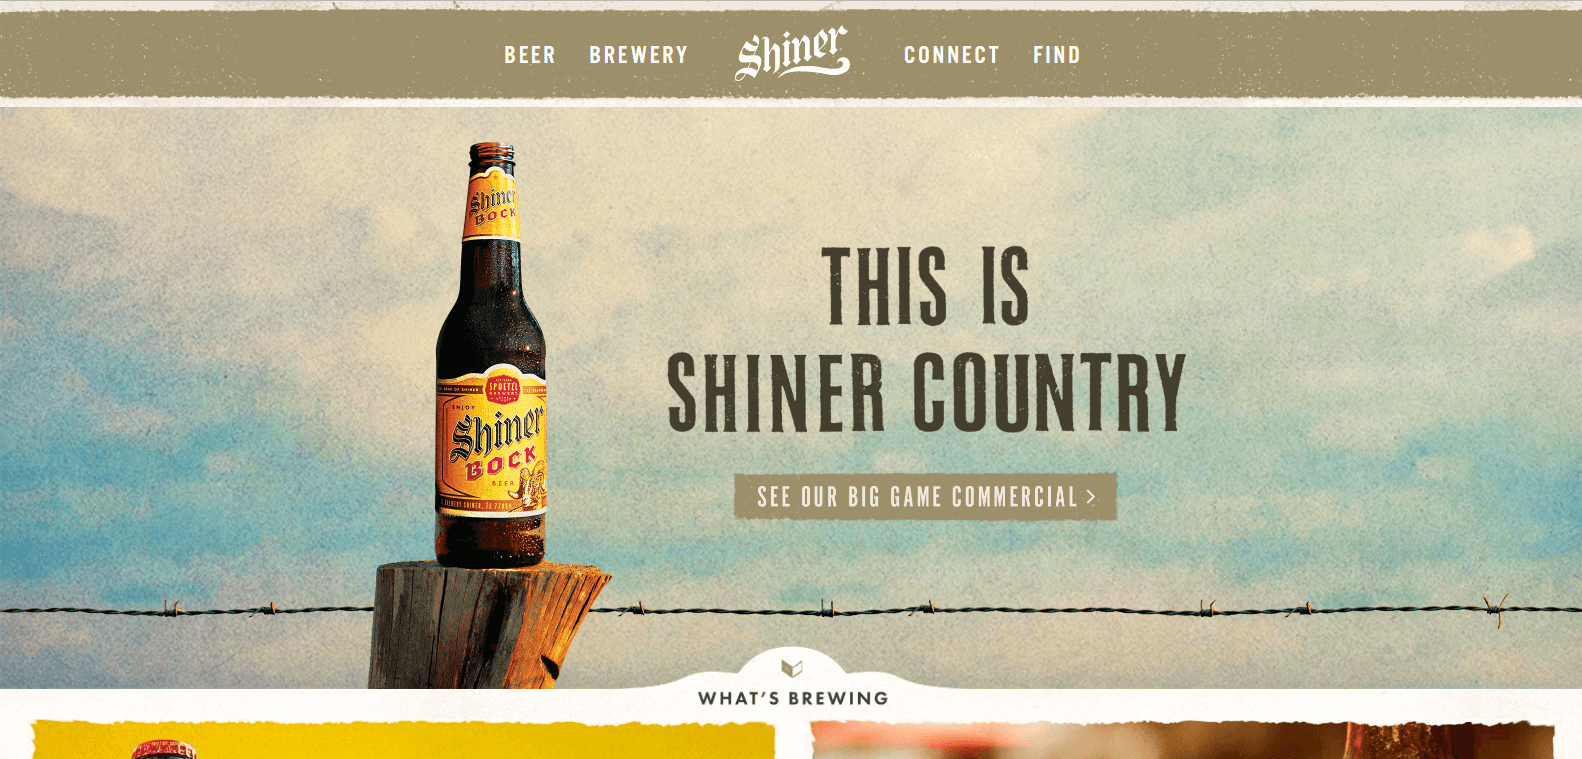 web design ideas shiner